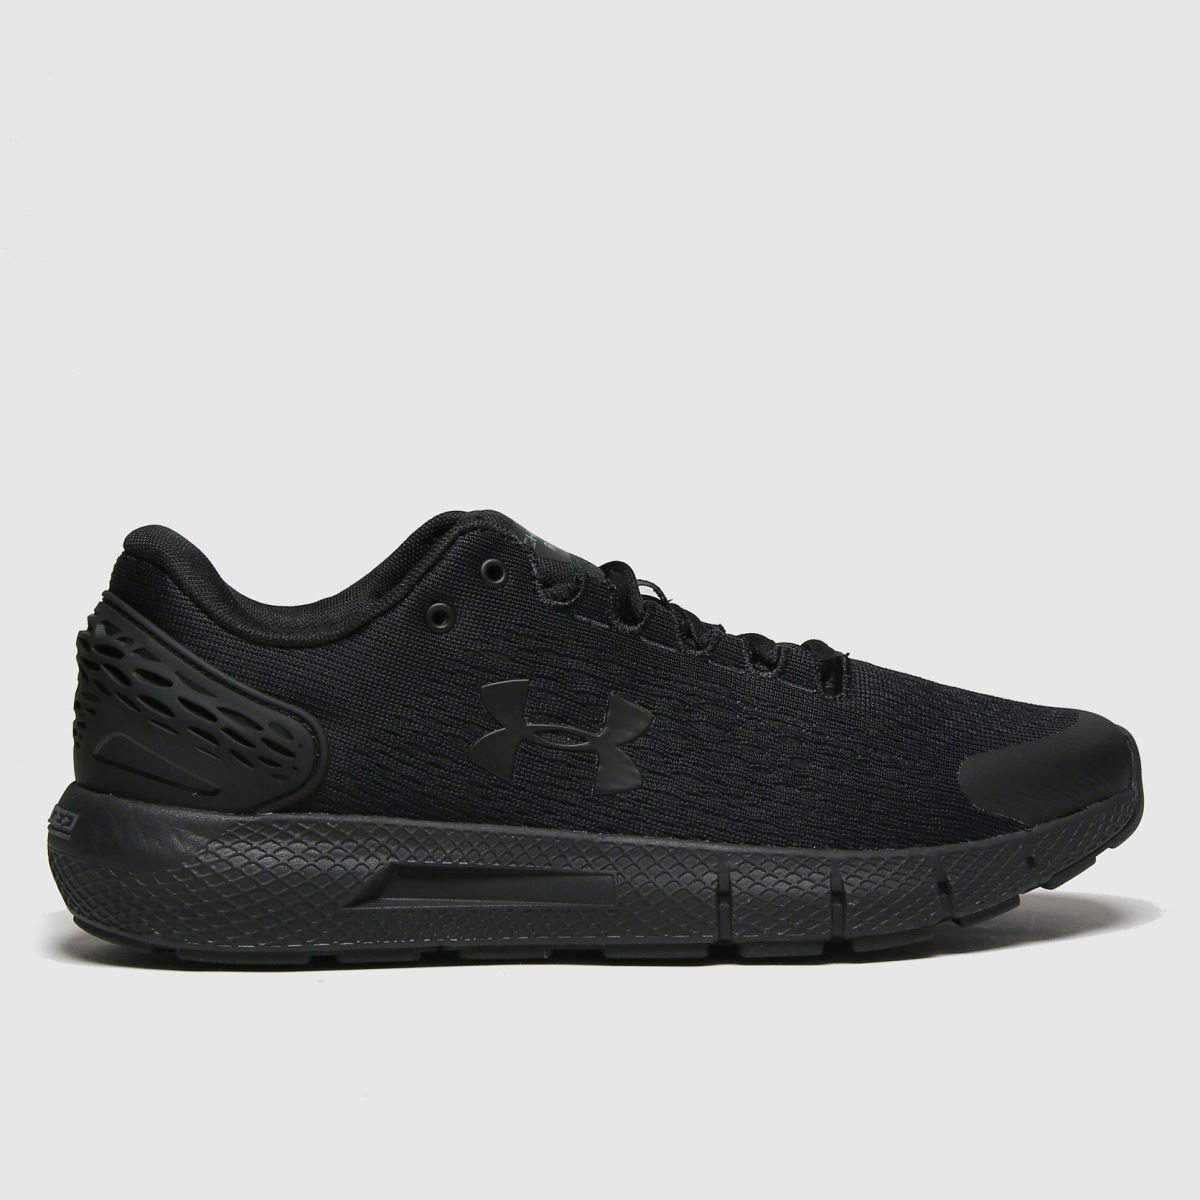 Under Armour Black Charged Rogue 2 Trainers